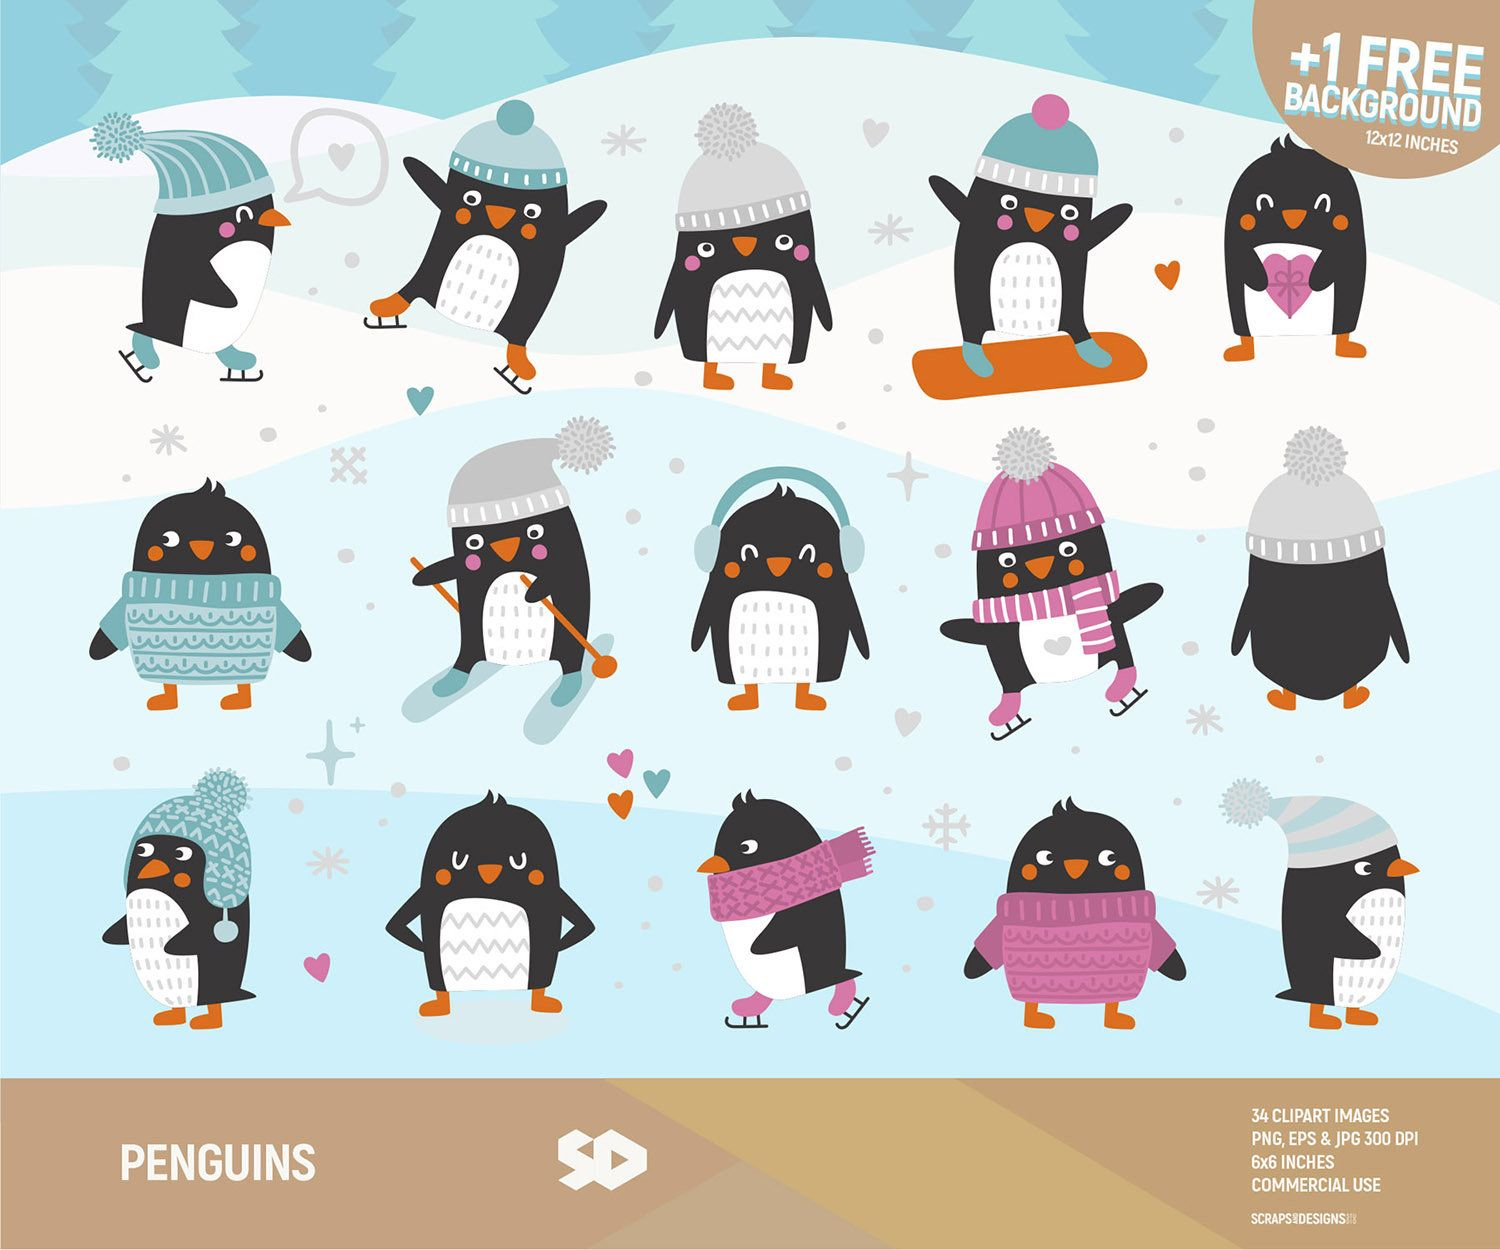 hight resolution of penguins clipart penguin clip art winter clipart snow background scarfs hats snowflakes ice skate ski snowboard commercial use